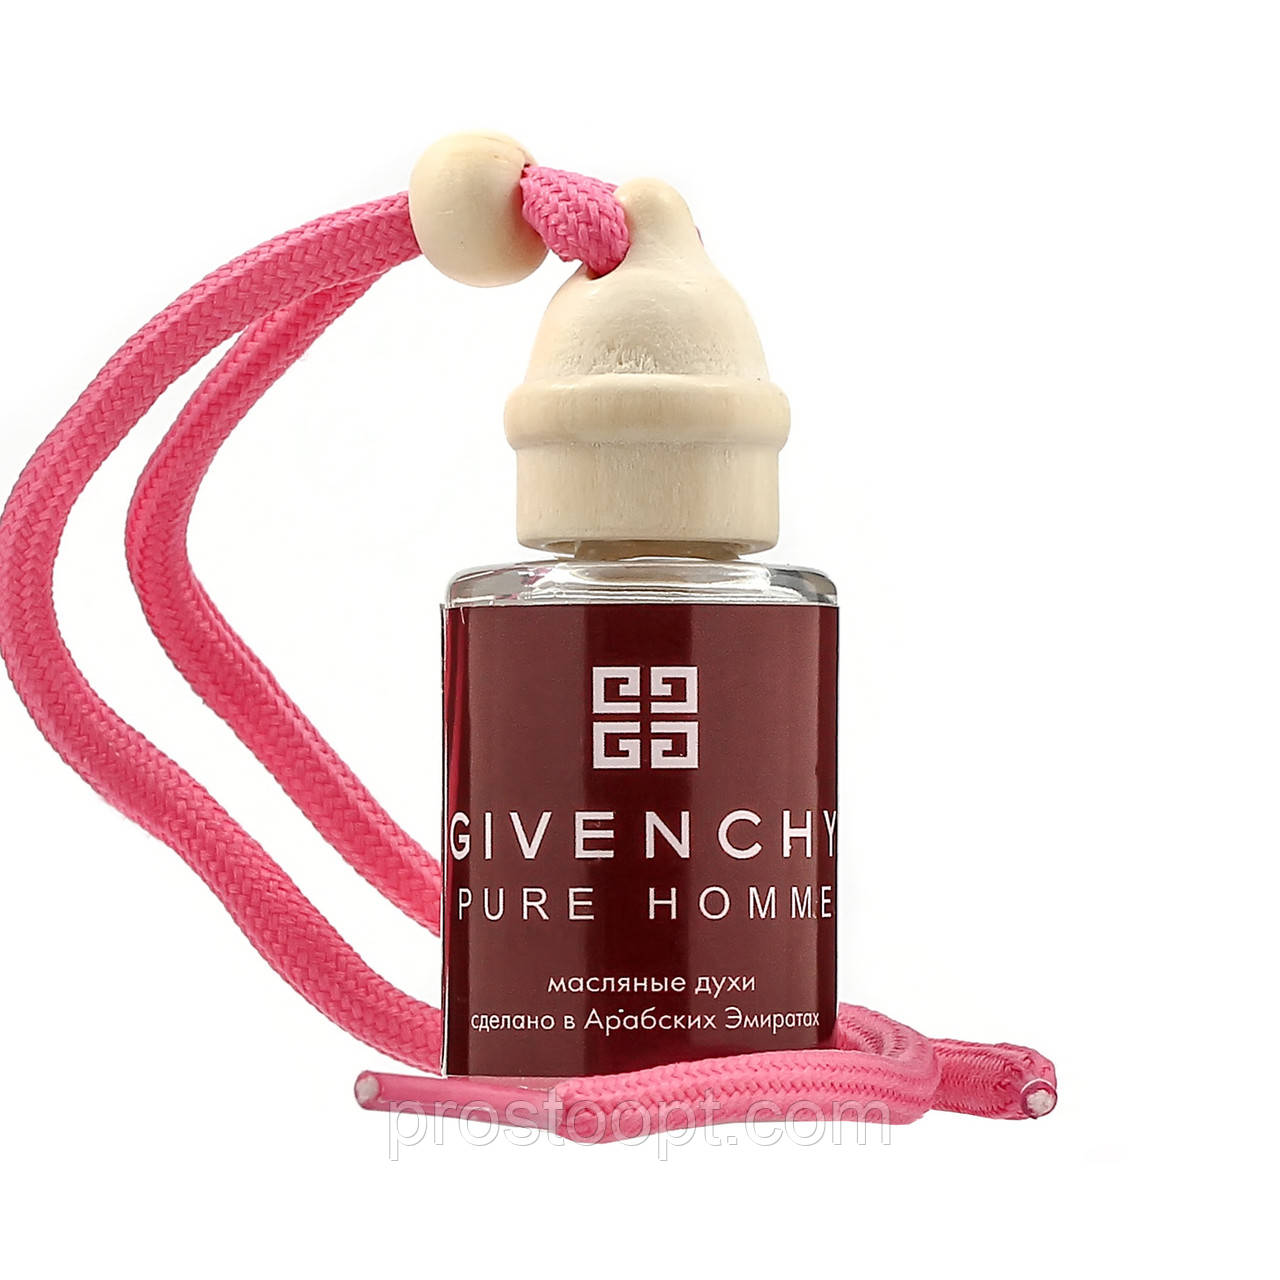 Автопарфюм Givenchy Pour Homme 12 мл